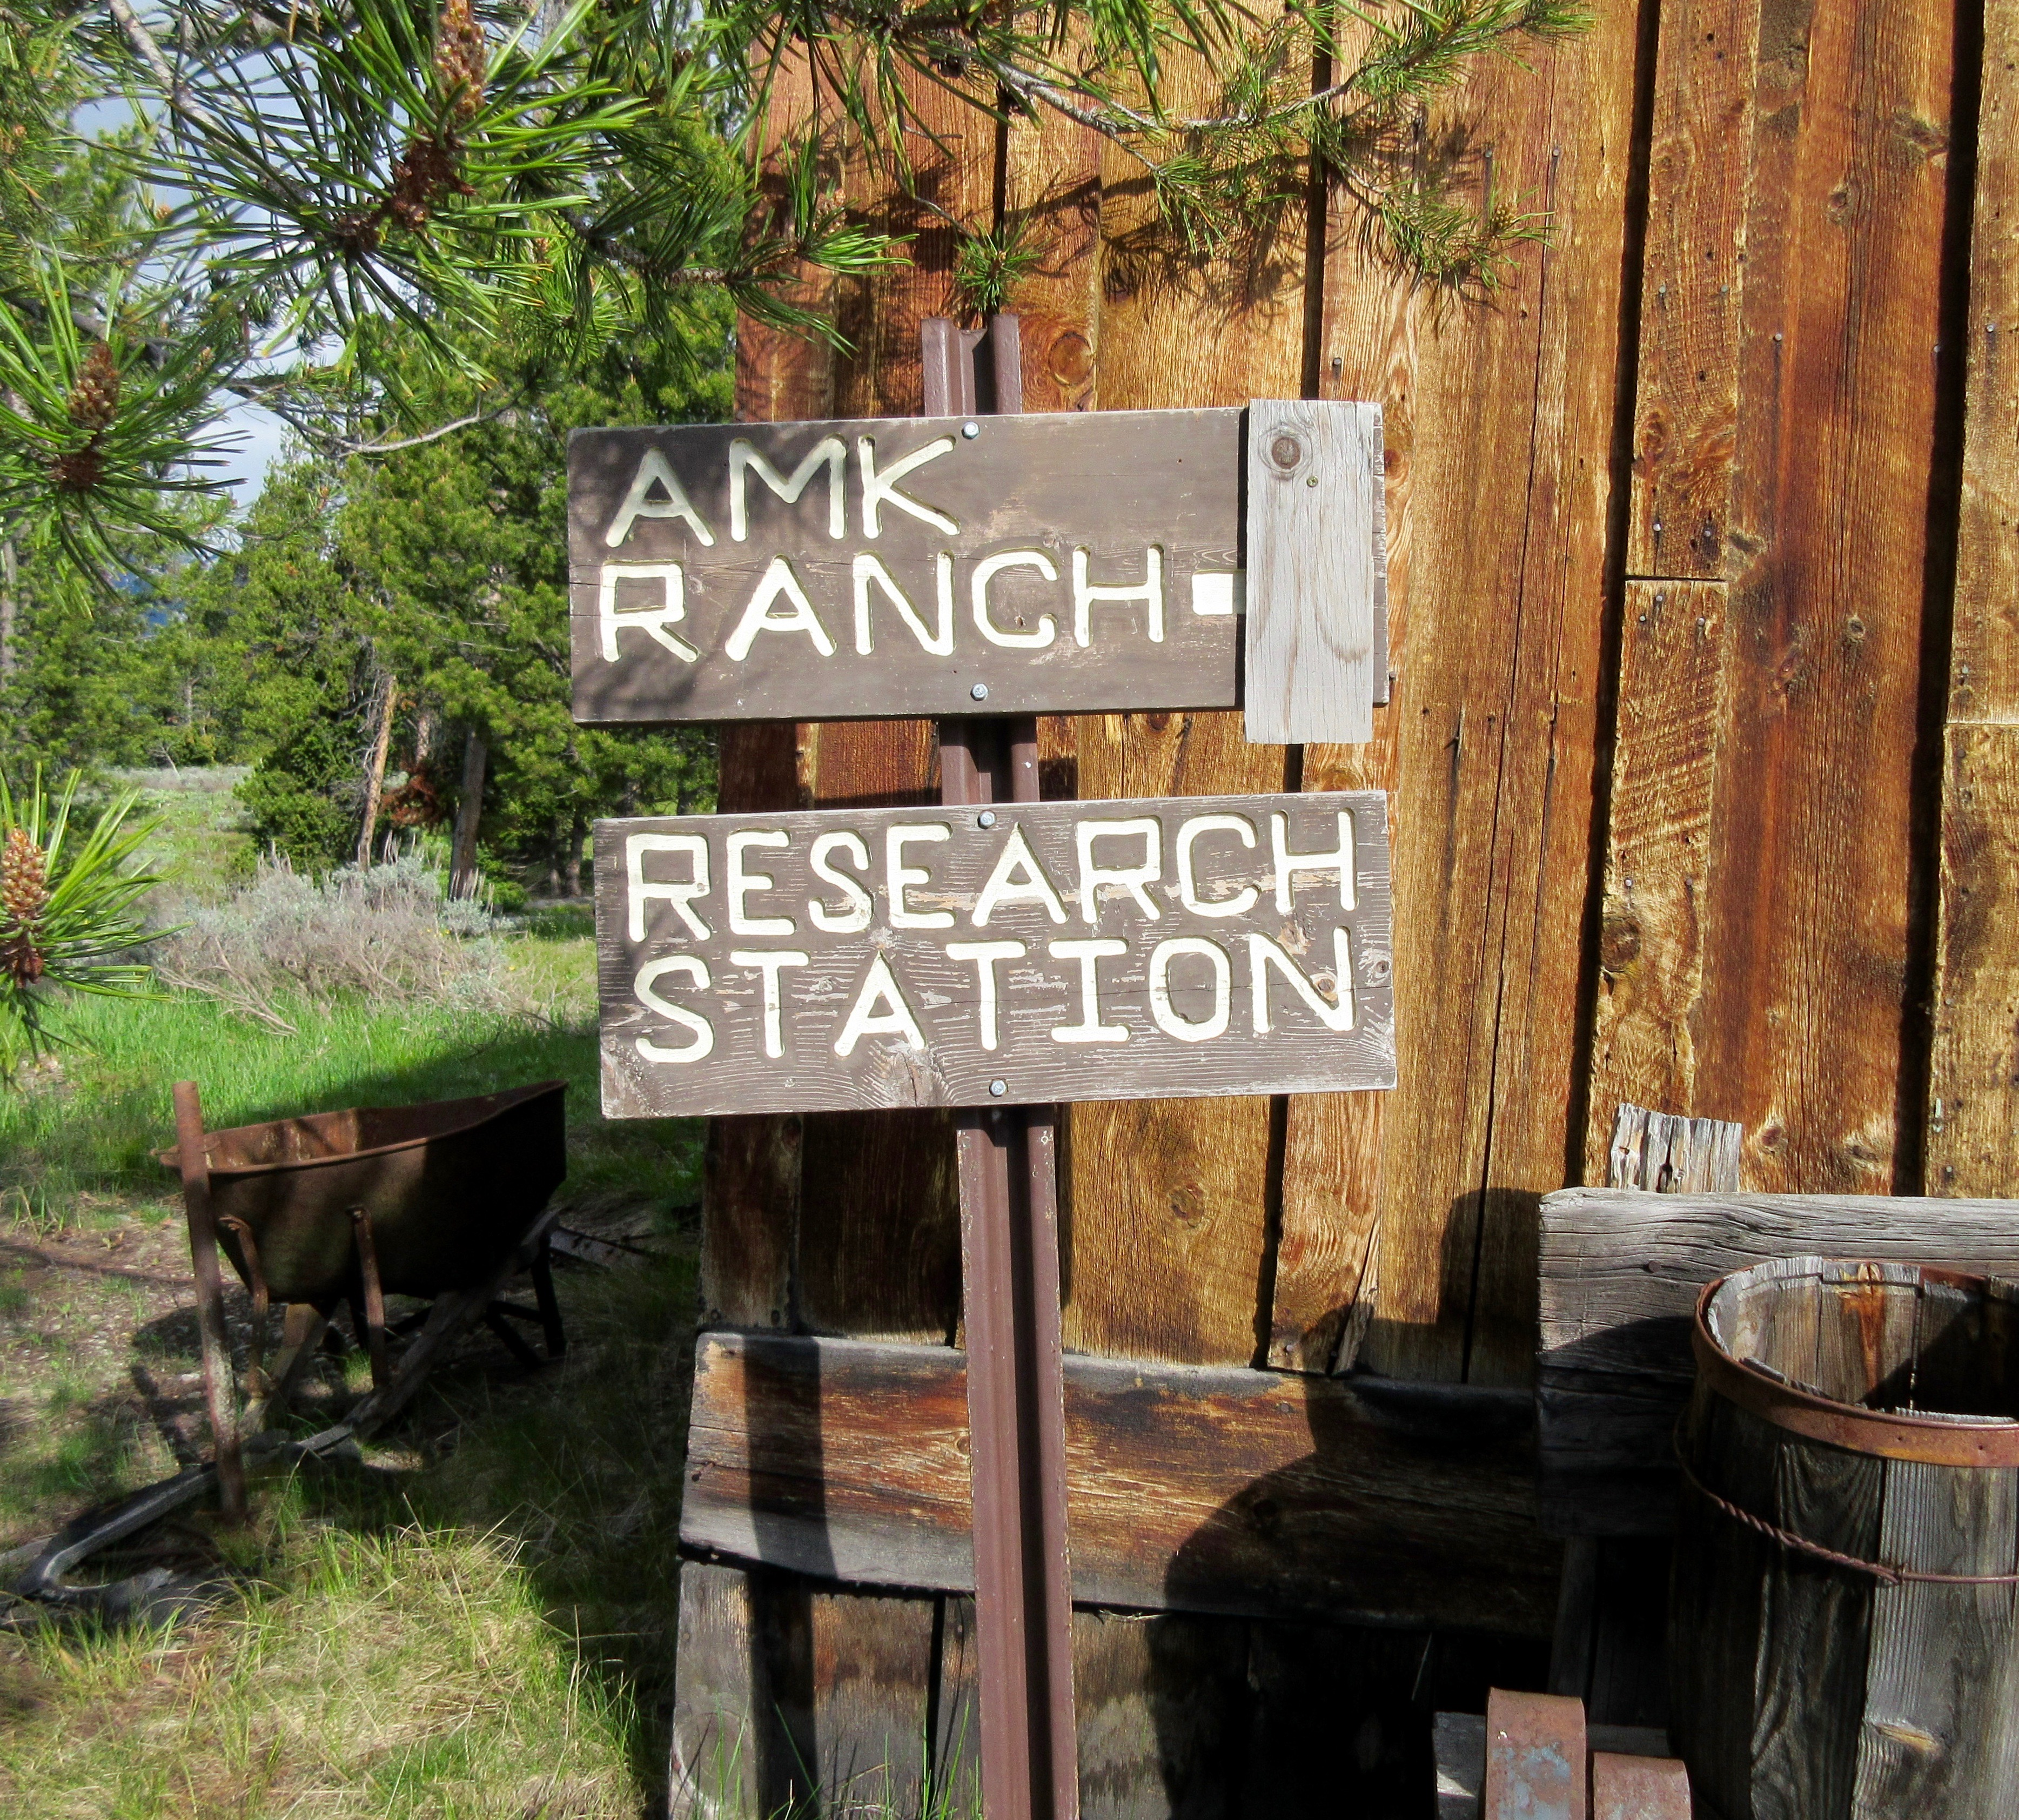 AMK Ranch Research Station